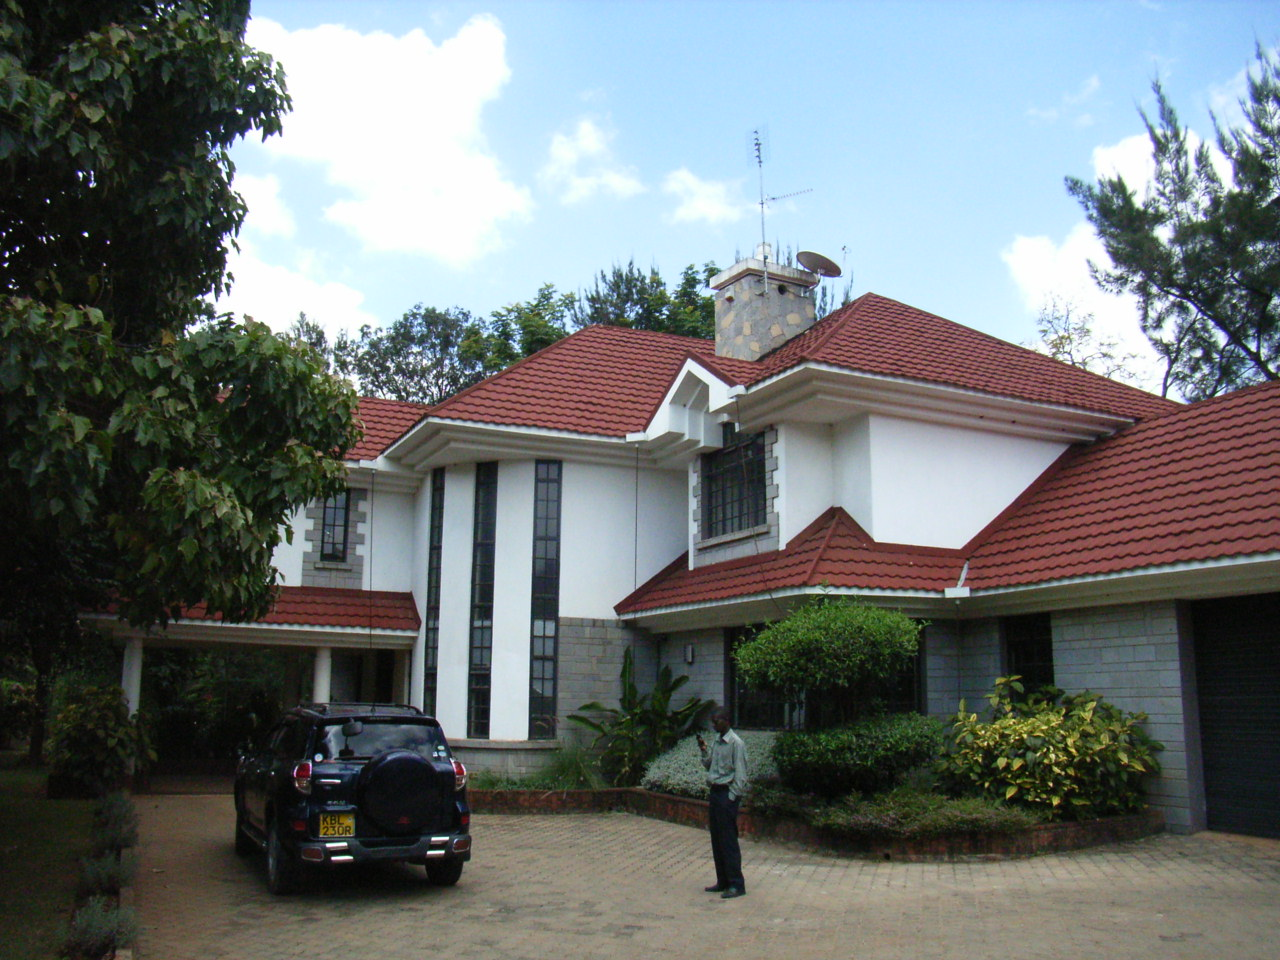 Rent house in tanzania arusha rent houses houses for sale for Recommended builders